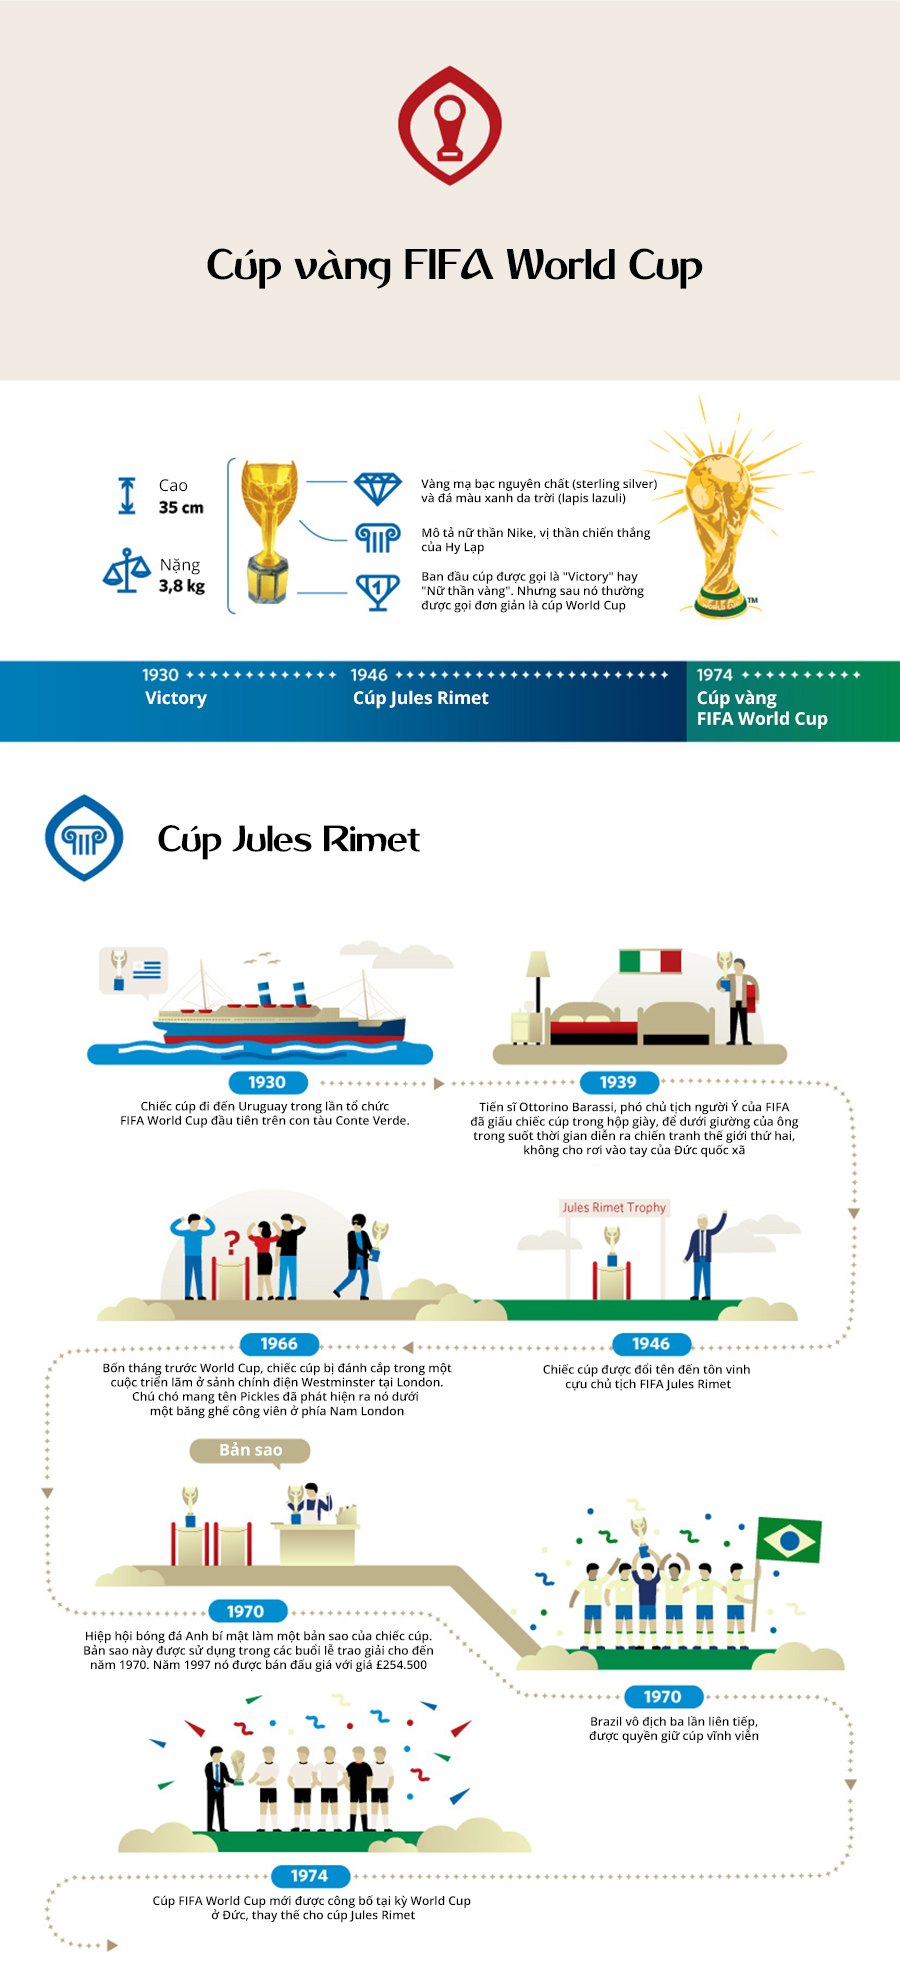 id toan canh ve chiec cup vang danh gia cua fifa world cup 6 1